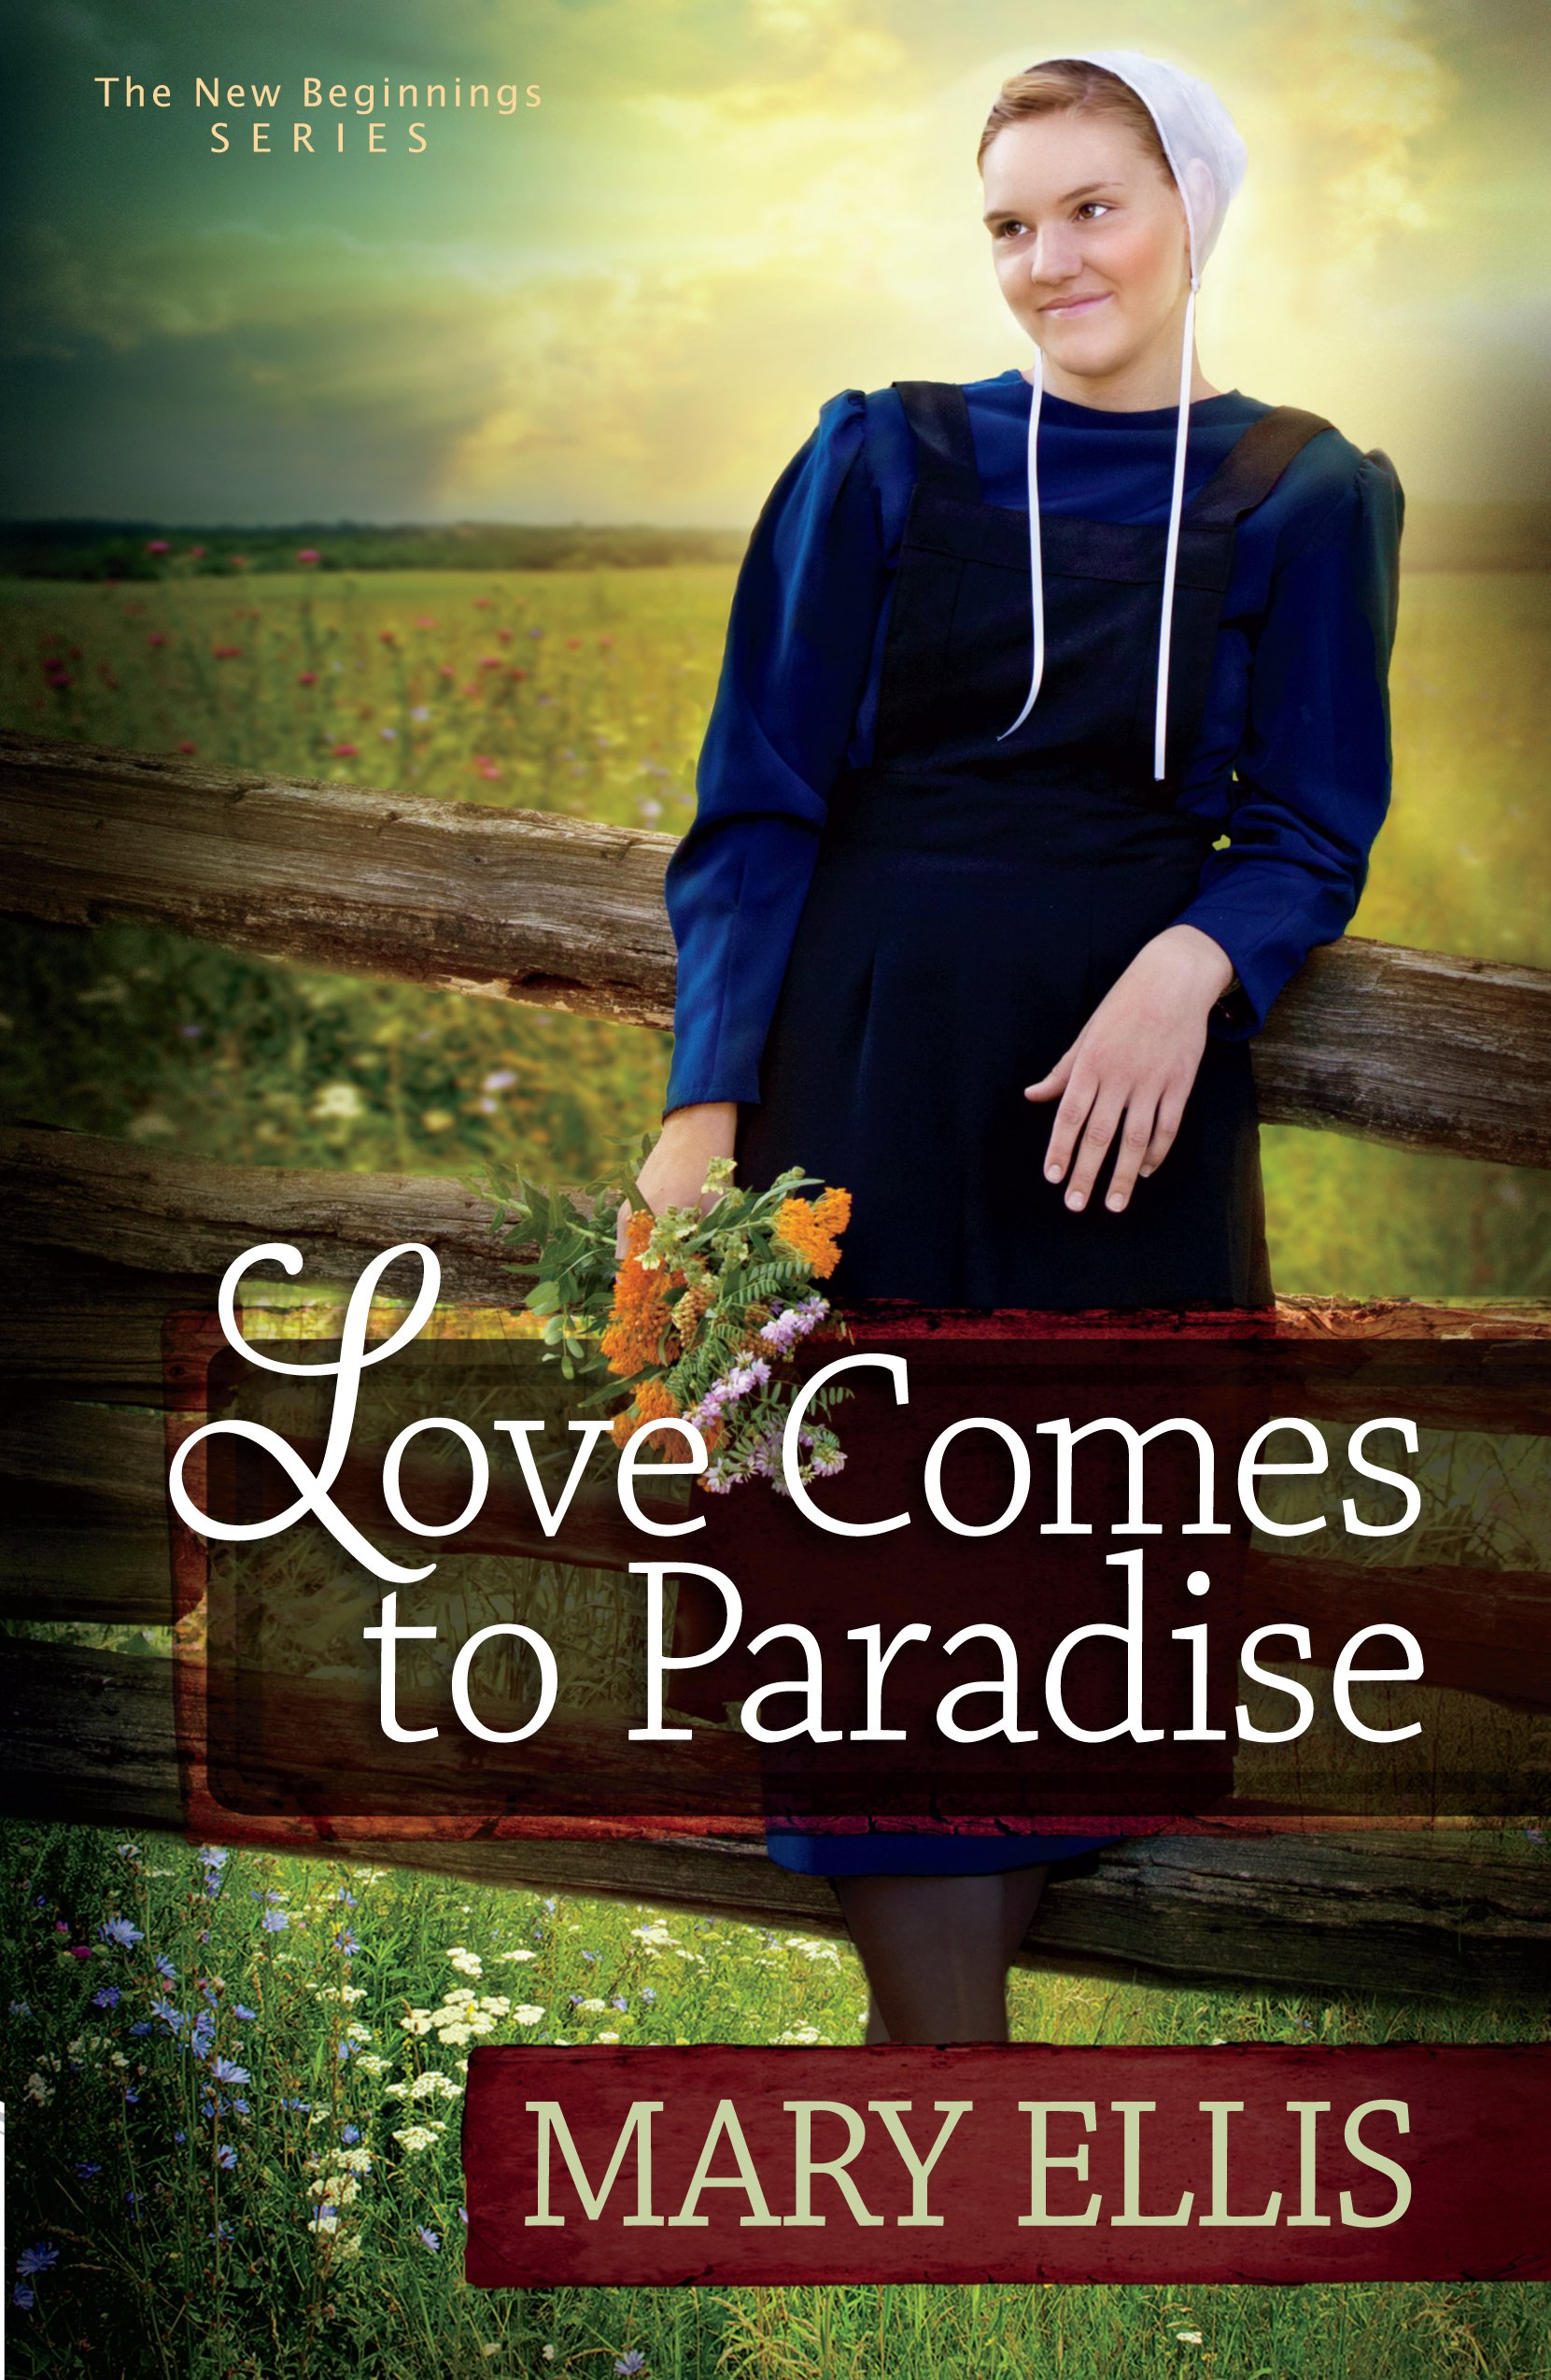 Download Love Comes to Paradise (Thorndike Press large print Christian Romance: The New Beginnings) ebook